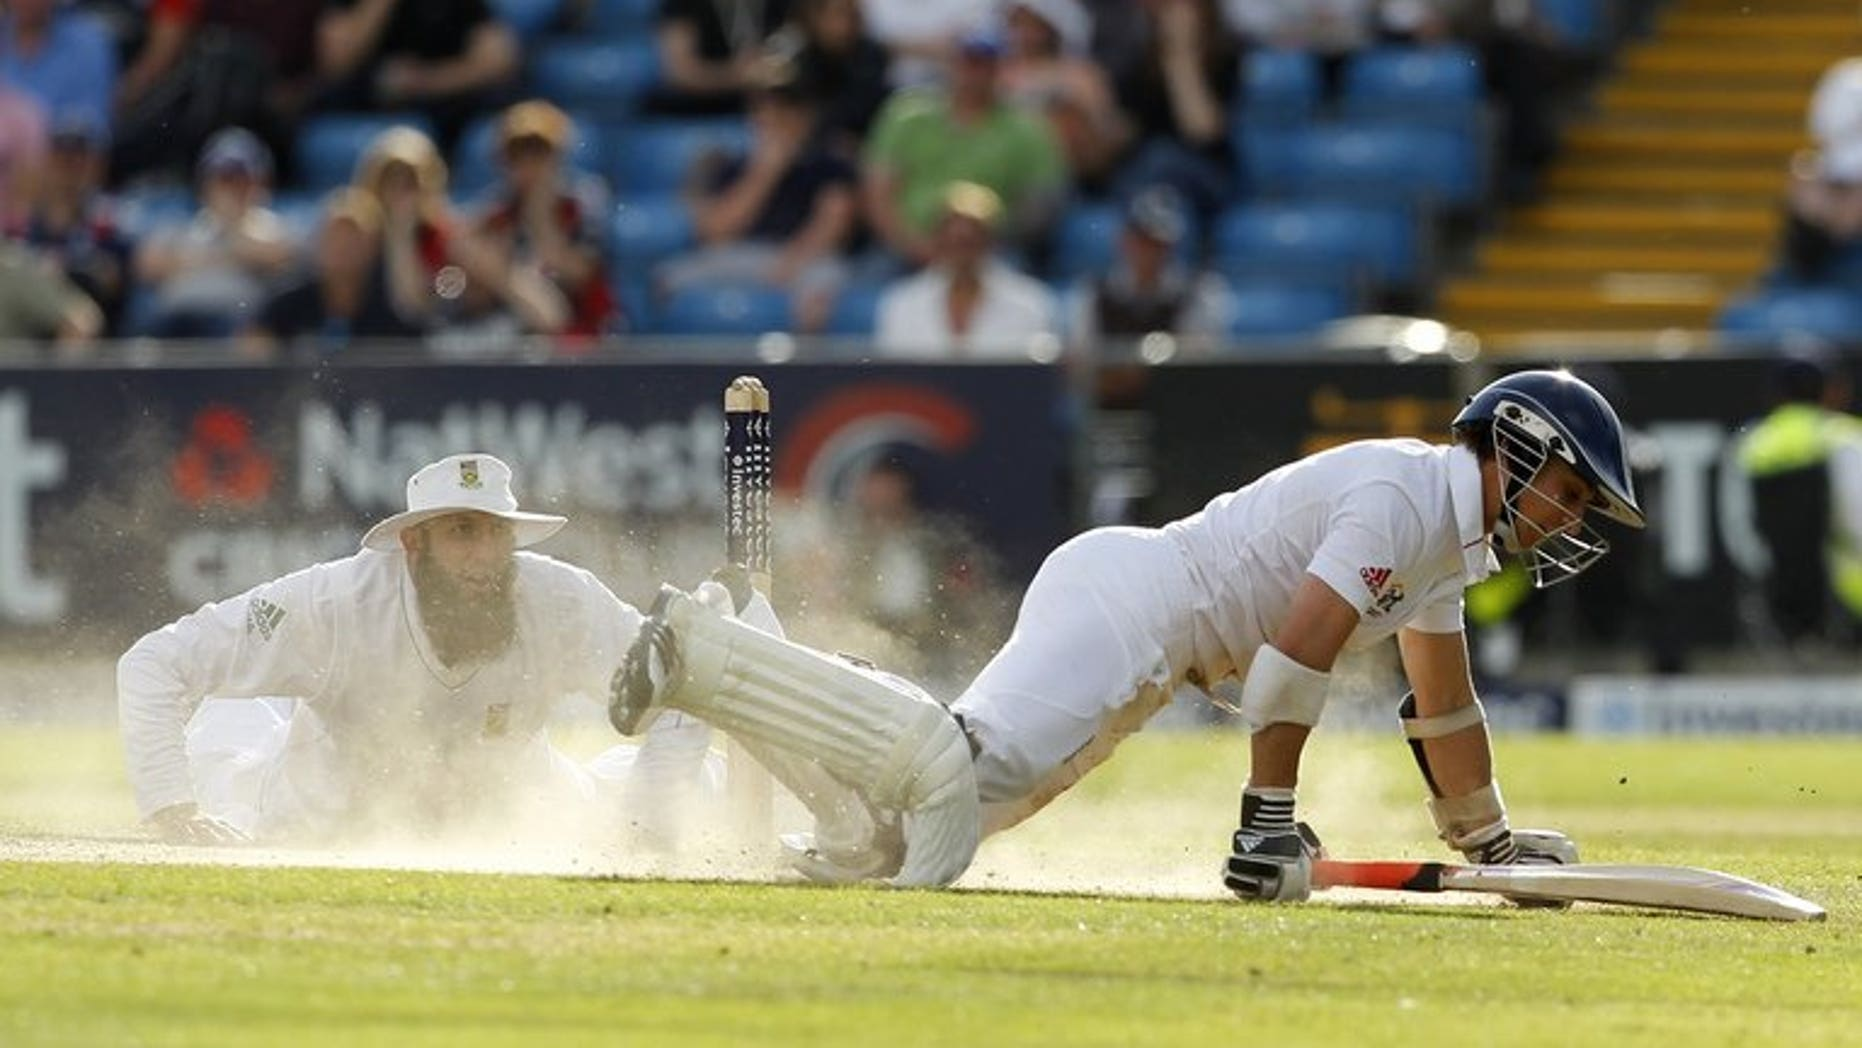 England's James Taylor (R) dives to avoid a run on August 4, 2012. He advanced his case for an England recall by making an unbeaten 64 for Sussex against Australia on the second day of three at Hove.